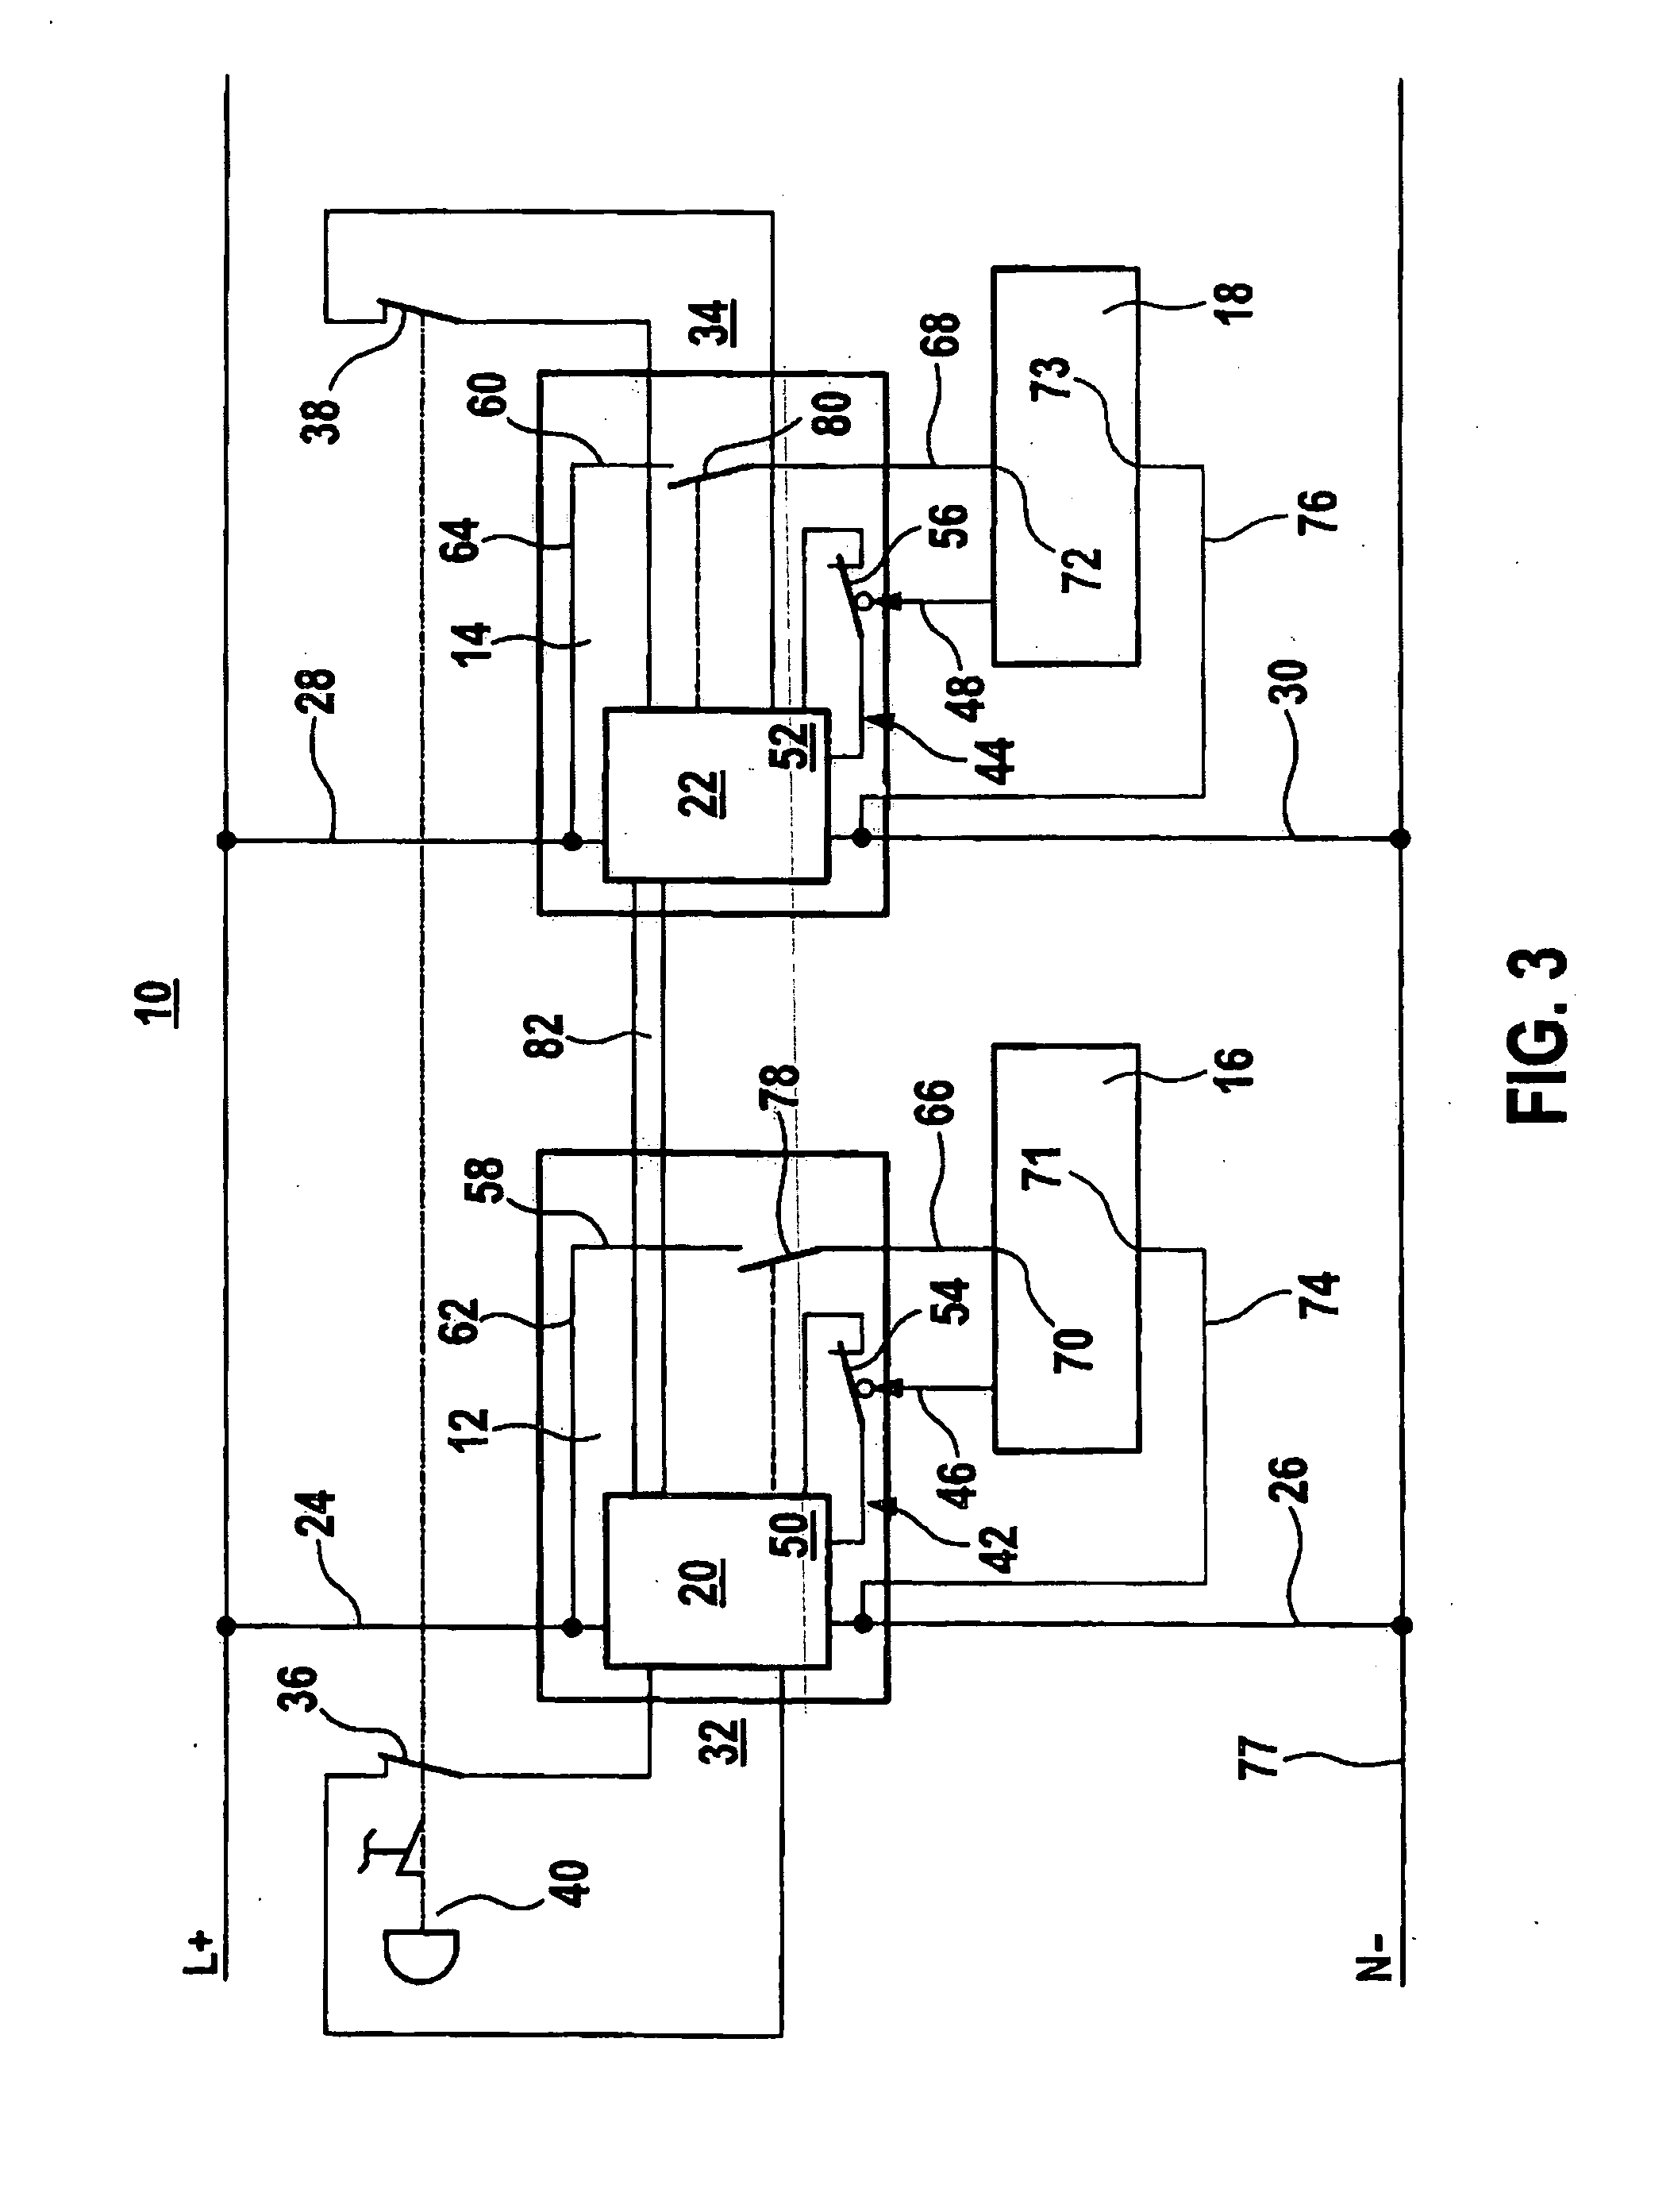 wiring circuit complexity